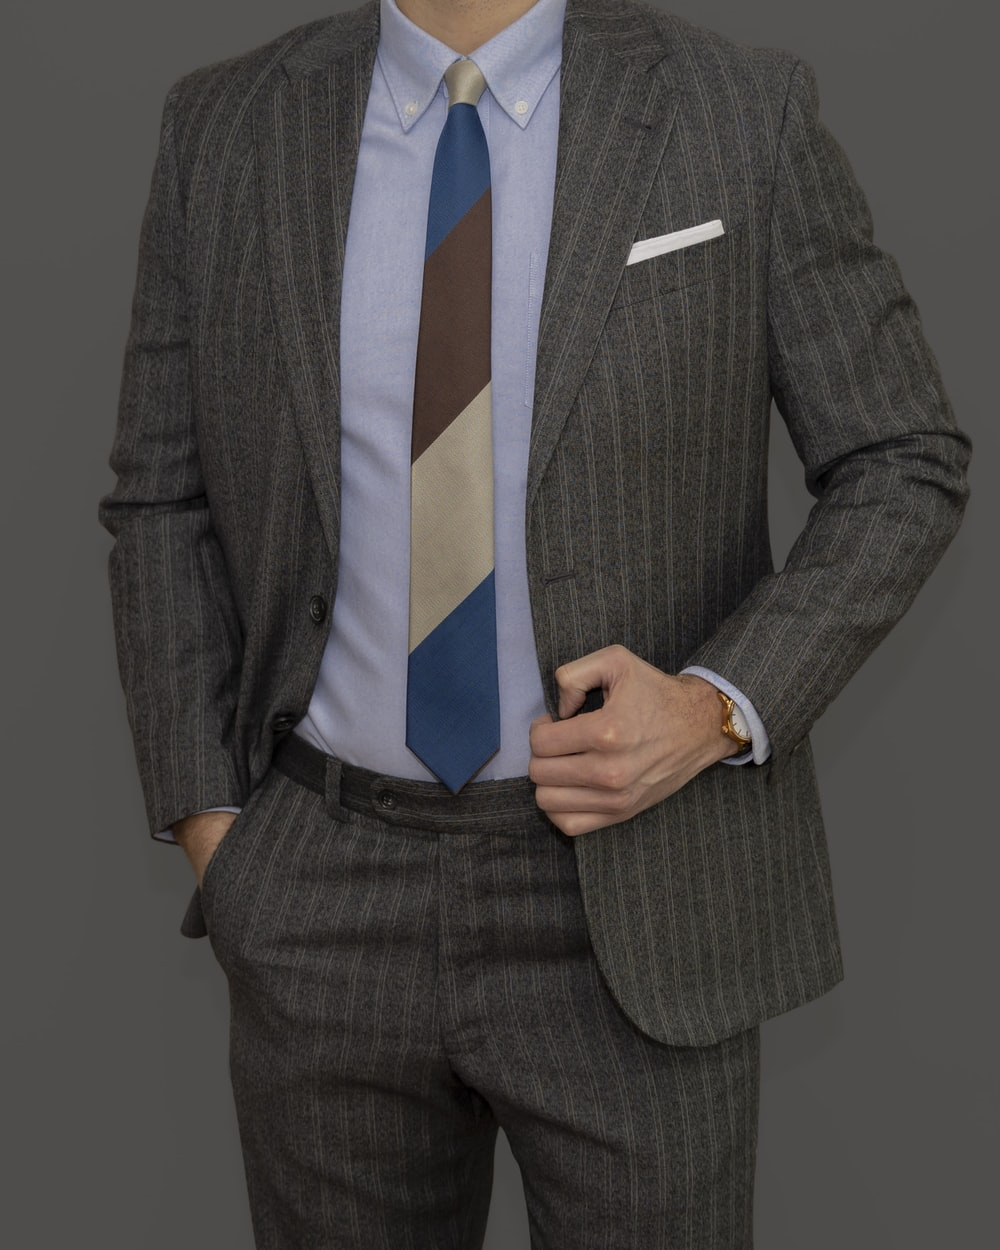 man in gray suit jacket and blue necktie